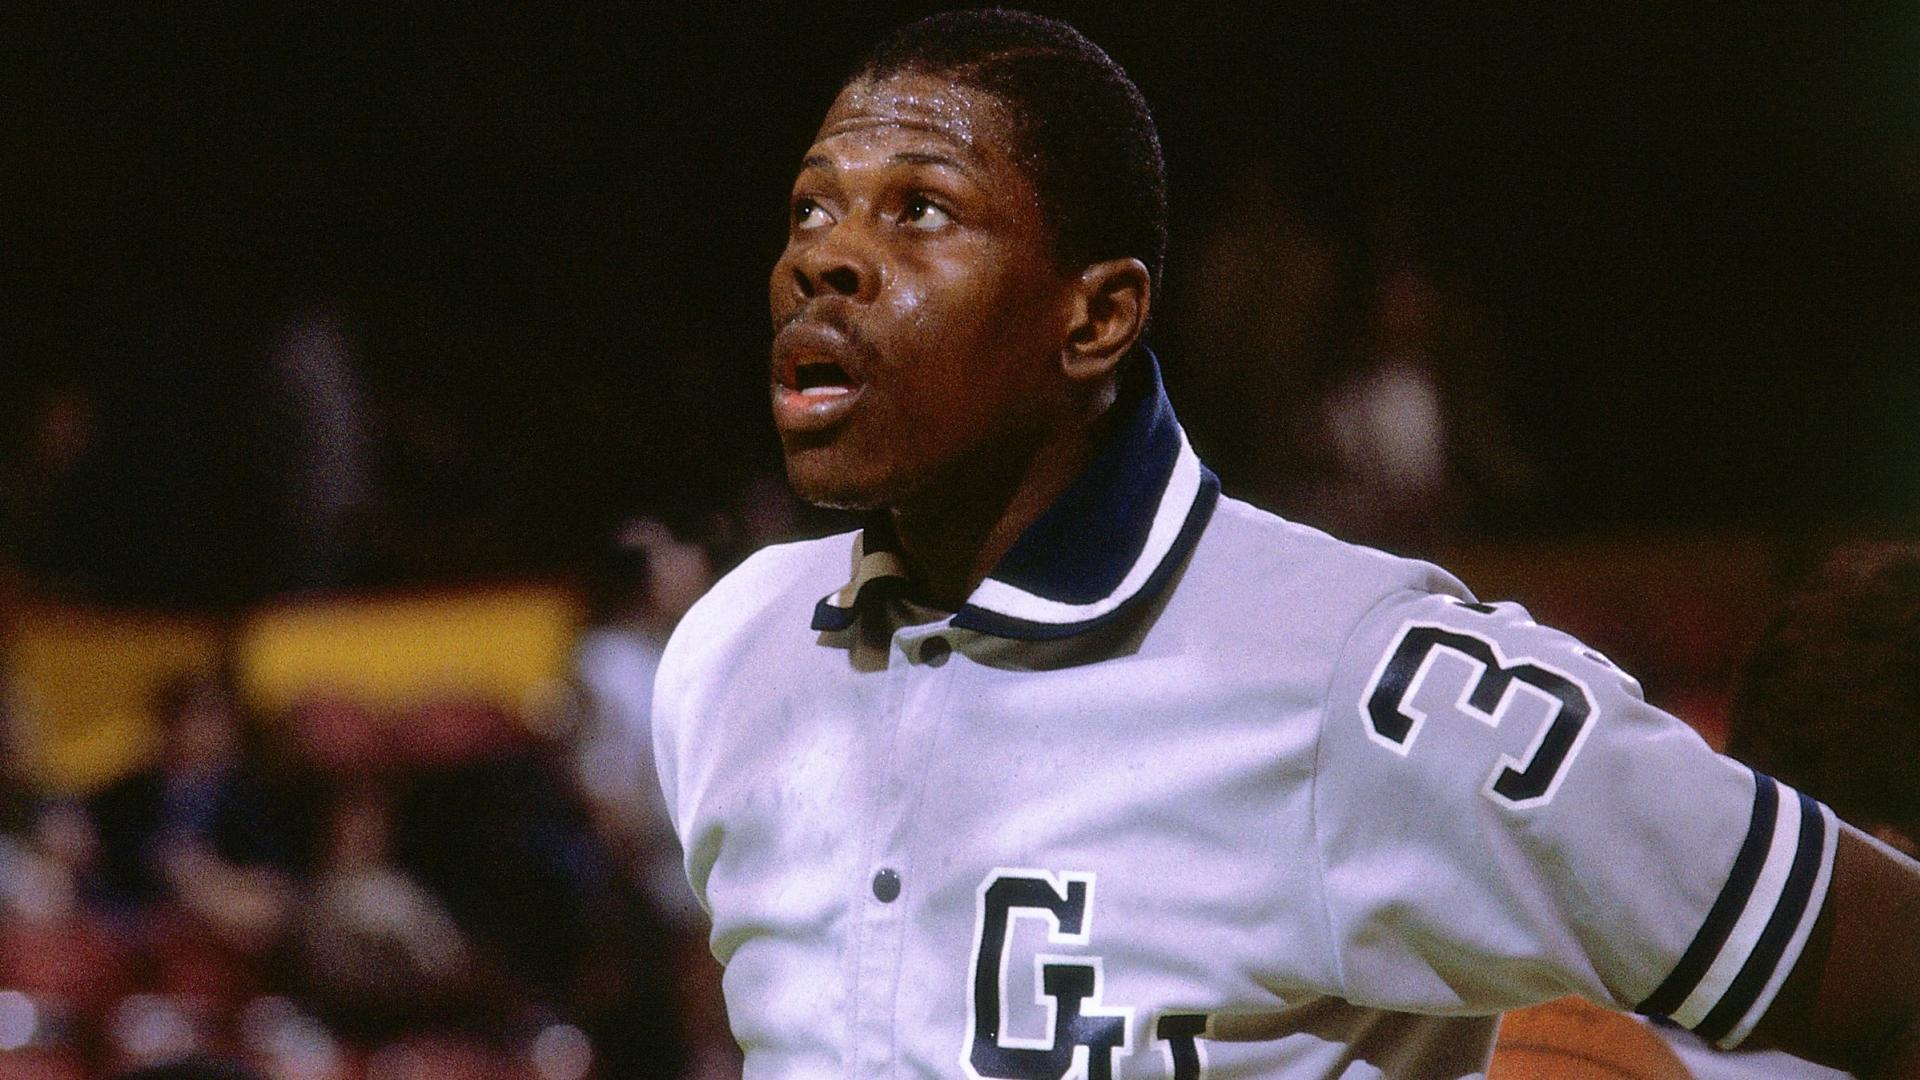 db4080812a7c Patrick Ewing was one of the most dominant college basketball players ever.